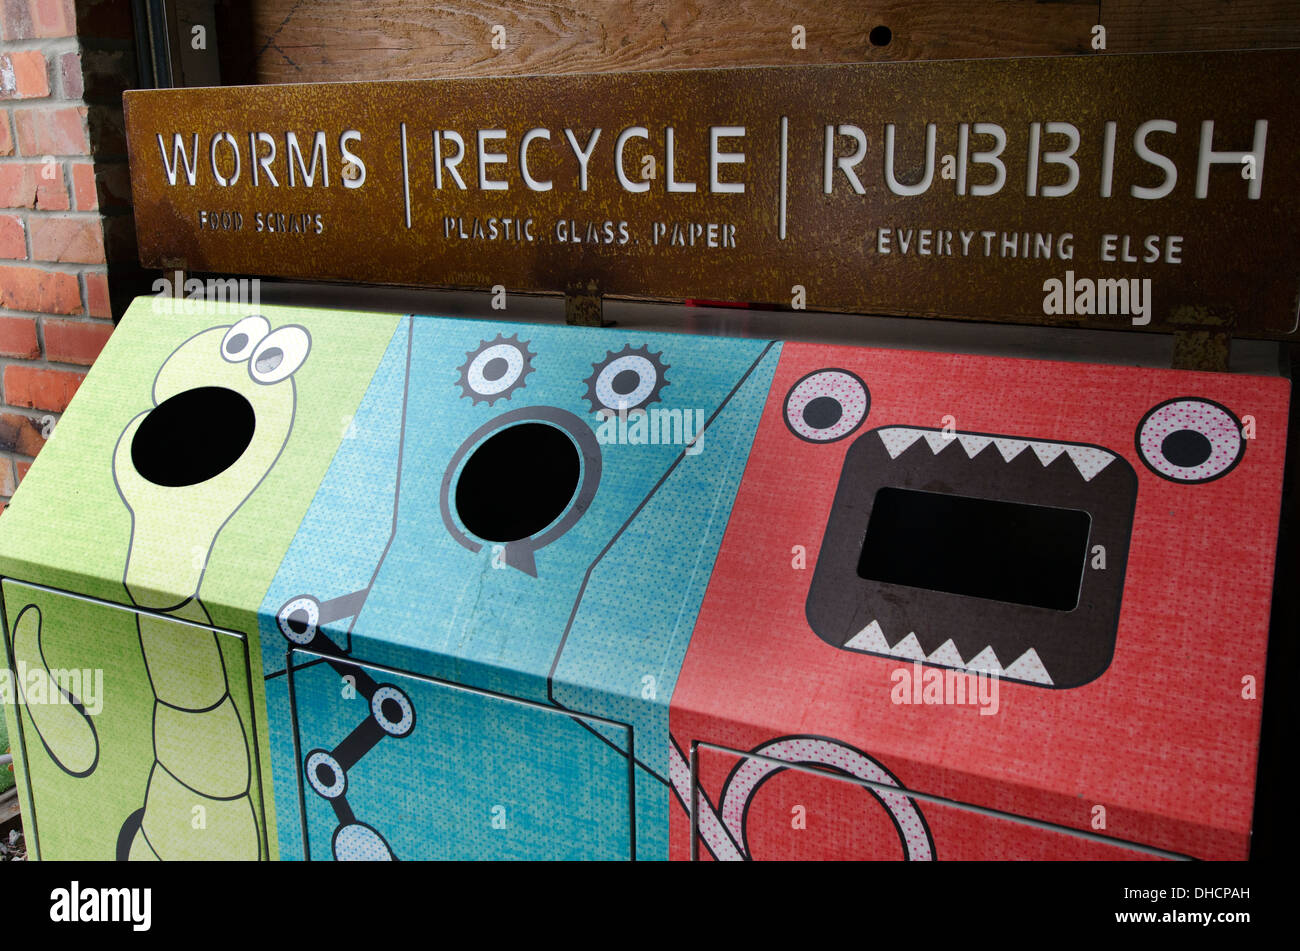 Recycling buckets - worms, recycle, rubbish - Stock Image